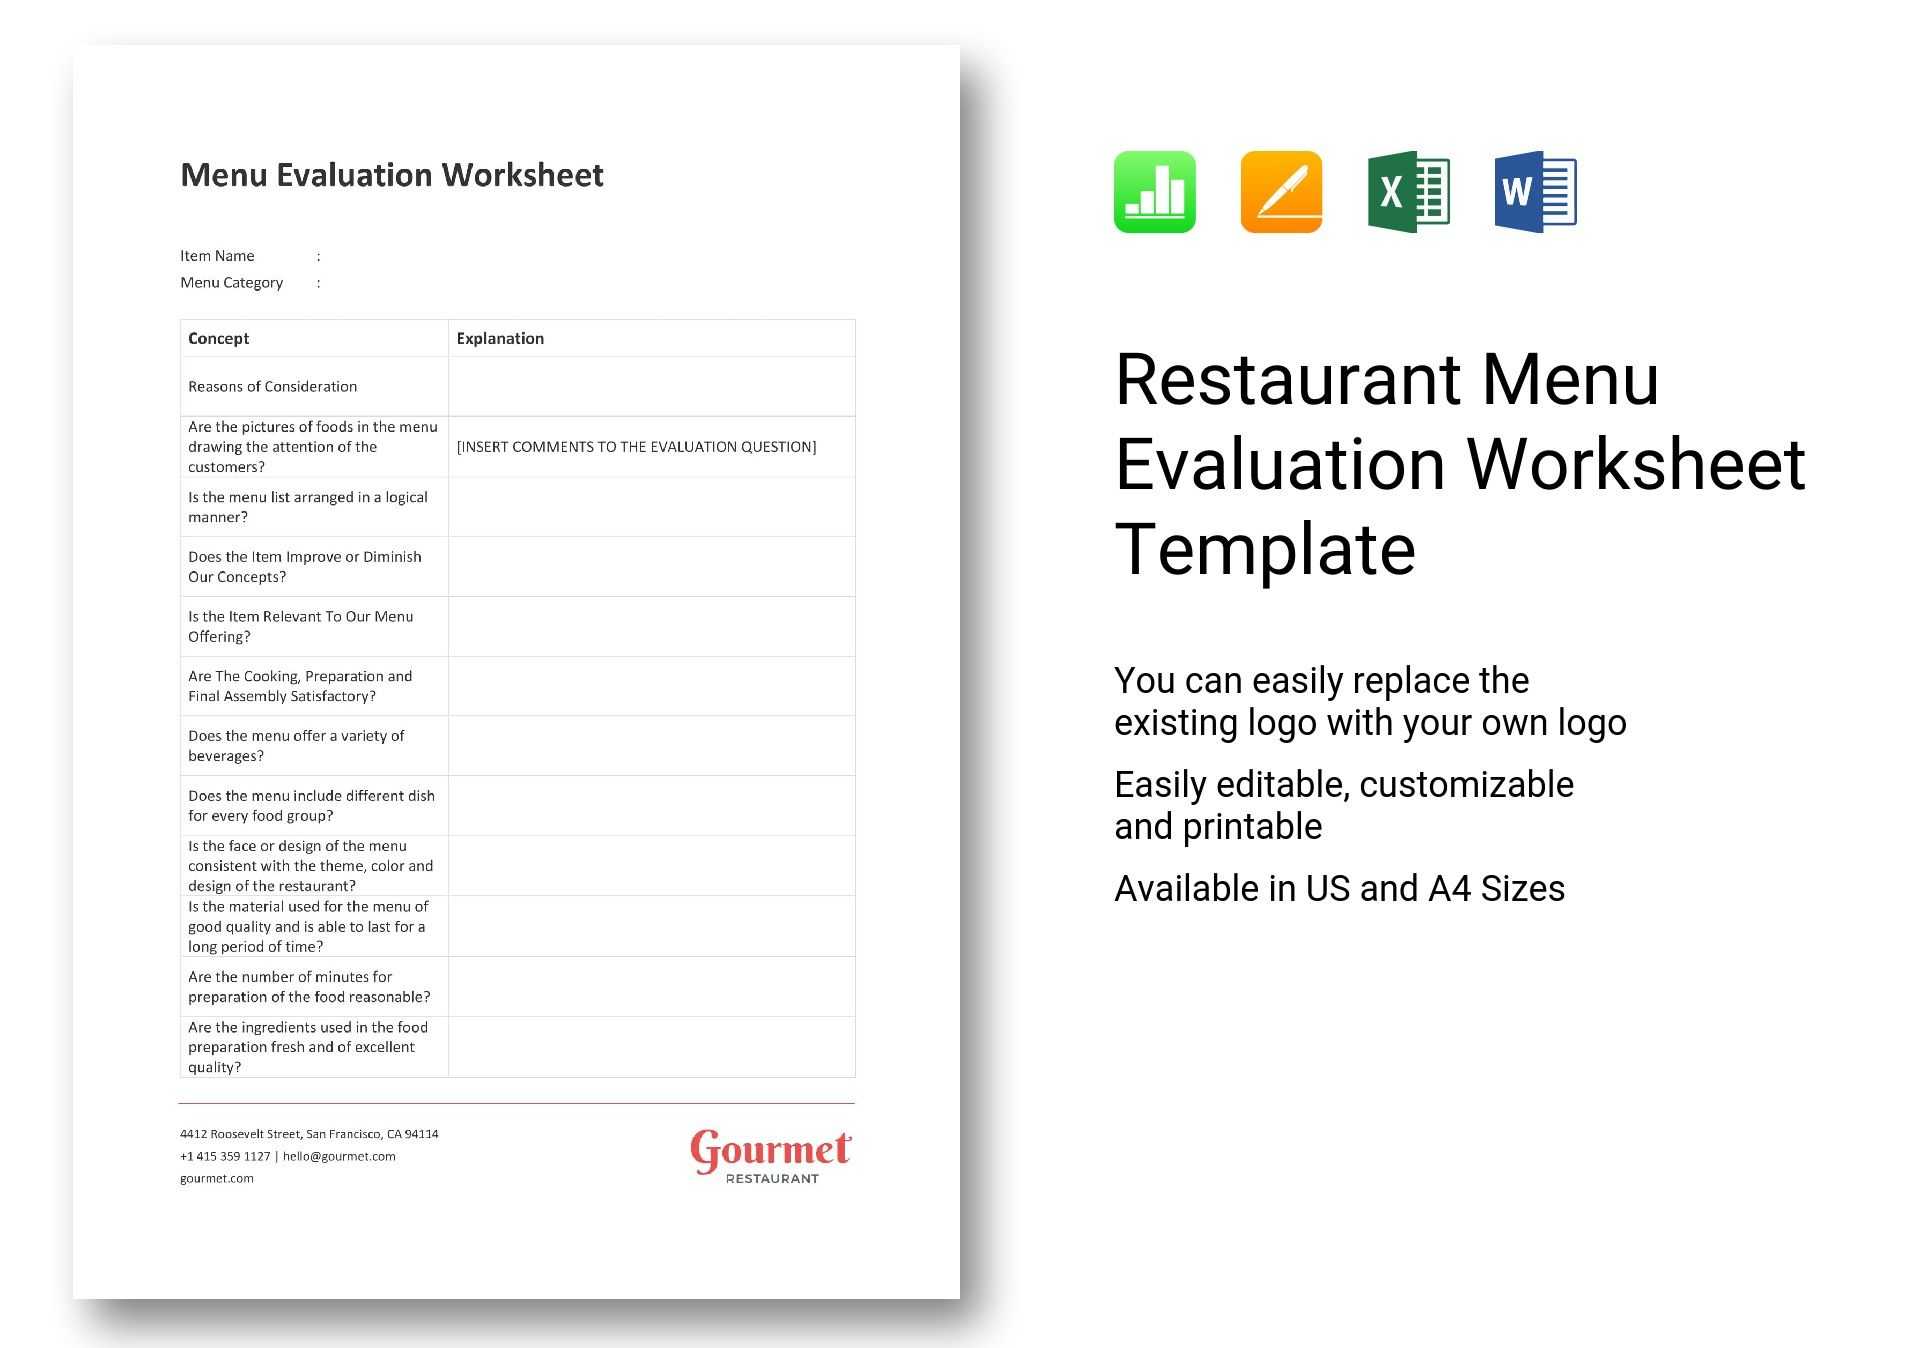 Restaurant Menu Evaluation Worksheet